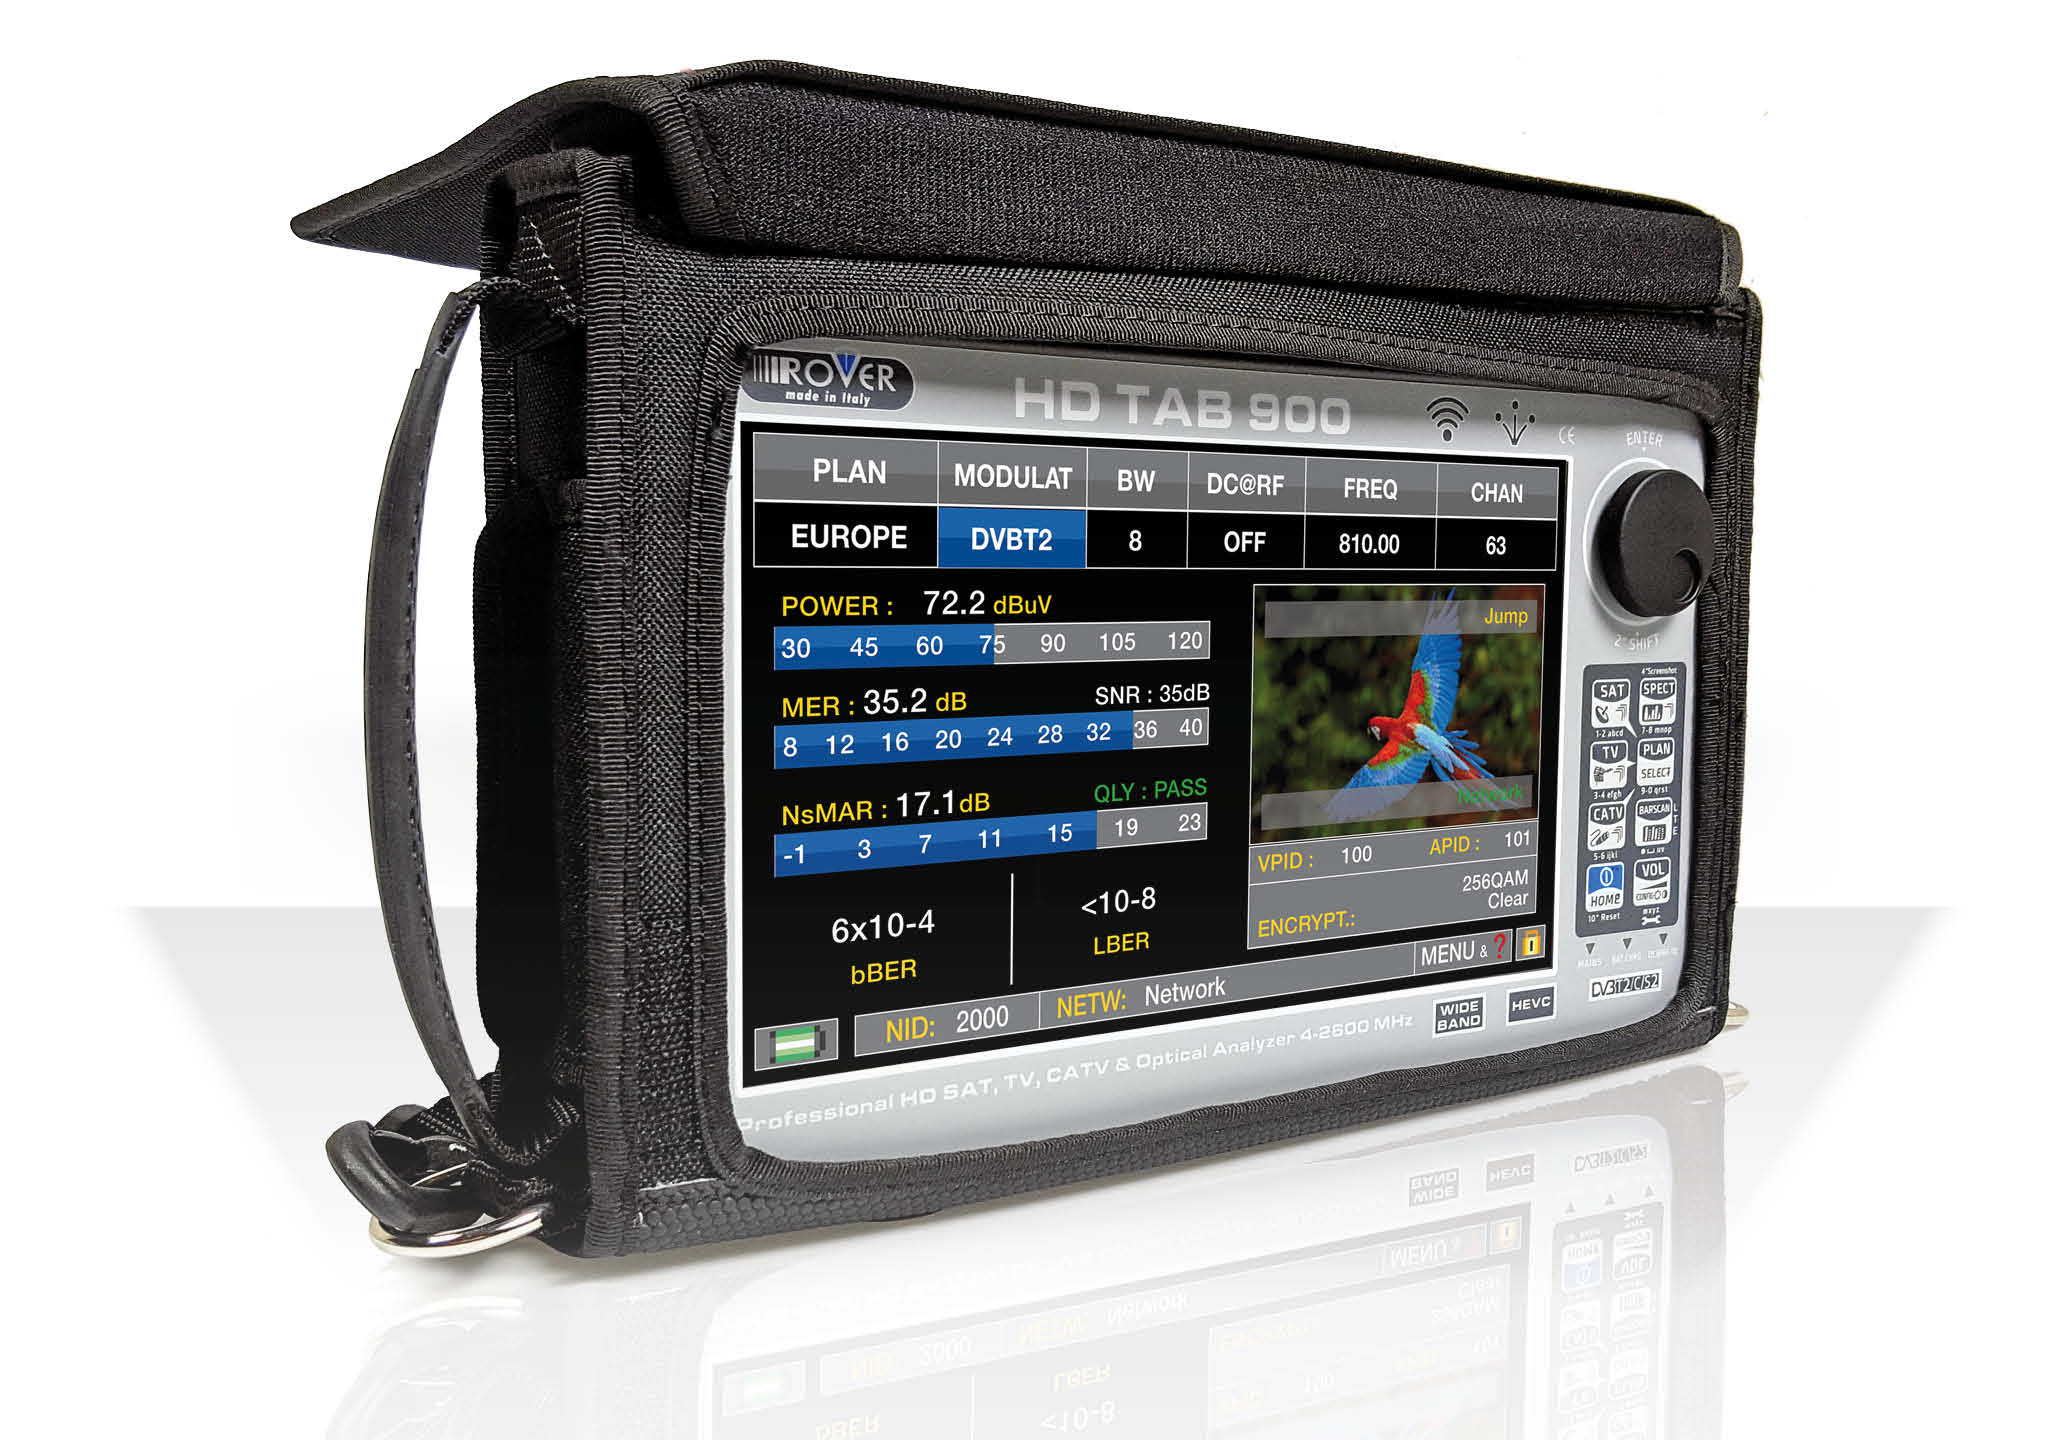 ROVER HD TAB 900 Plus tot37